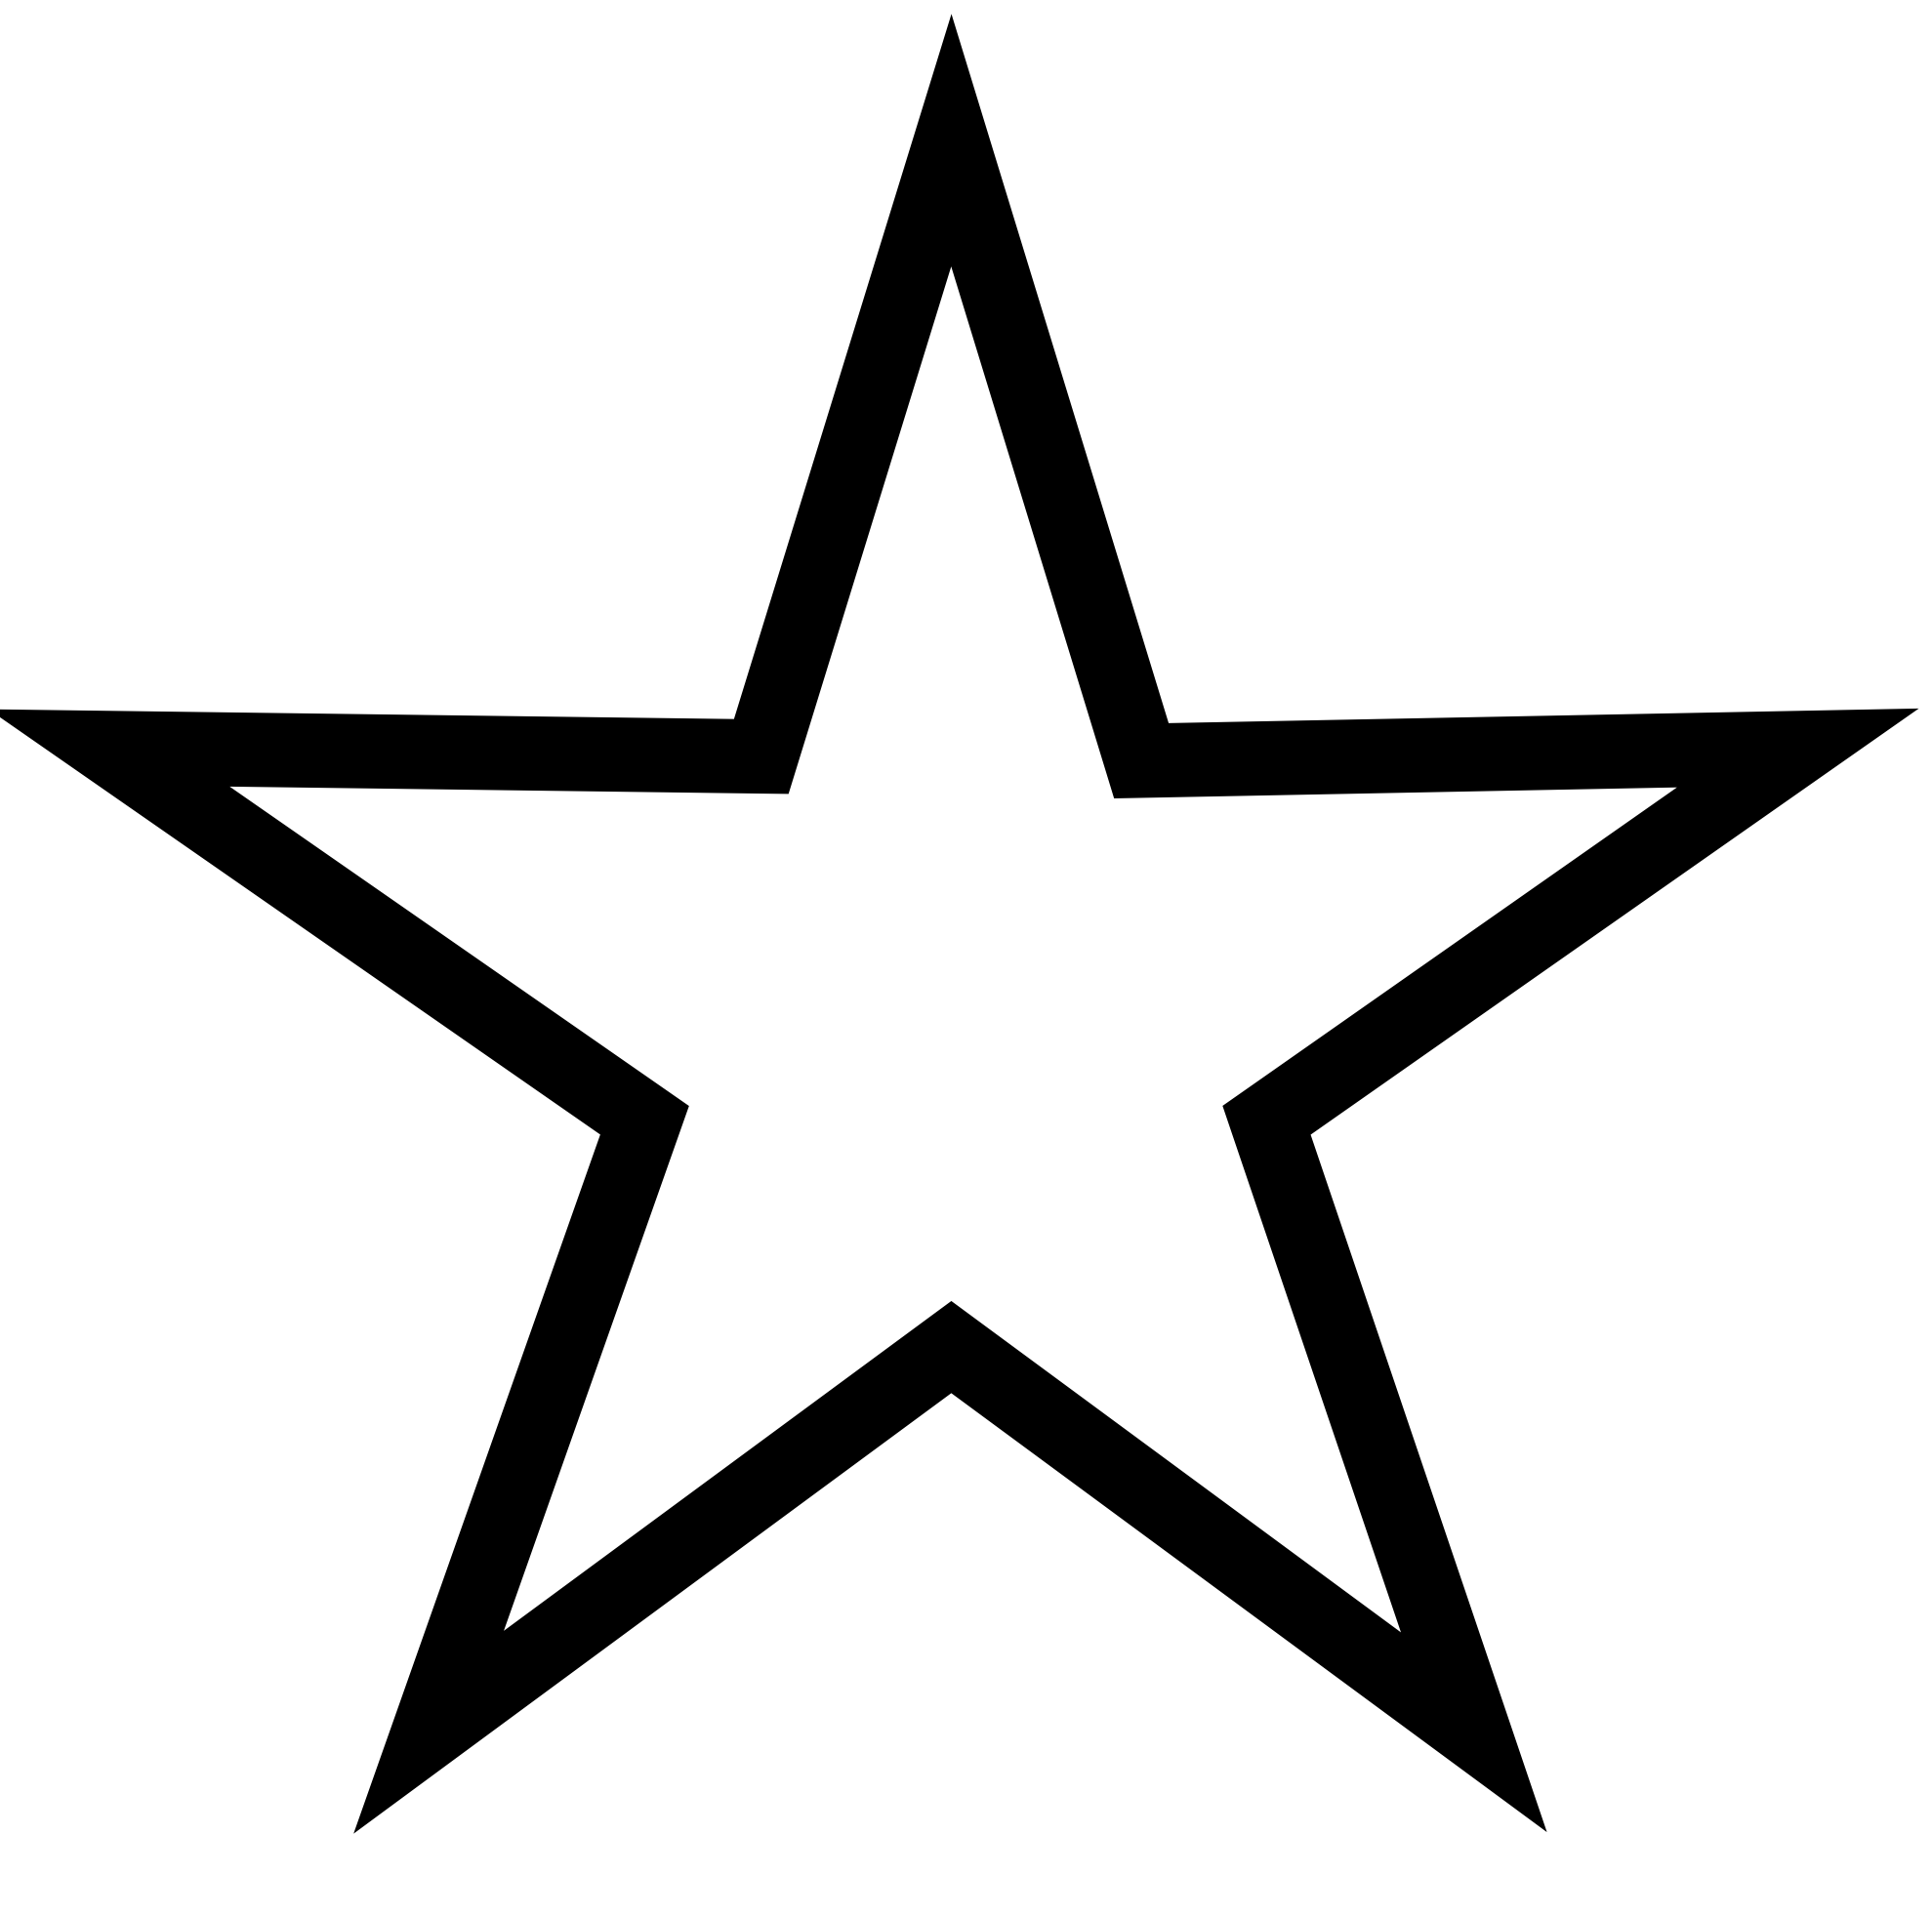 Star Clipart Black And White-star clipart black and white-7